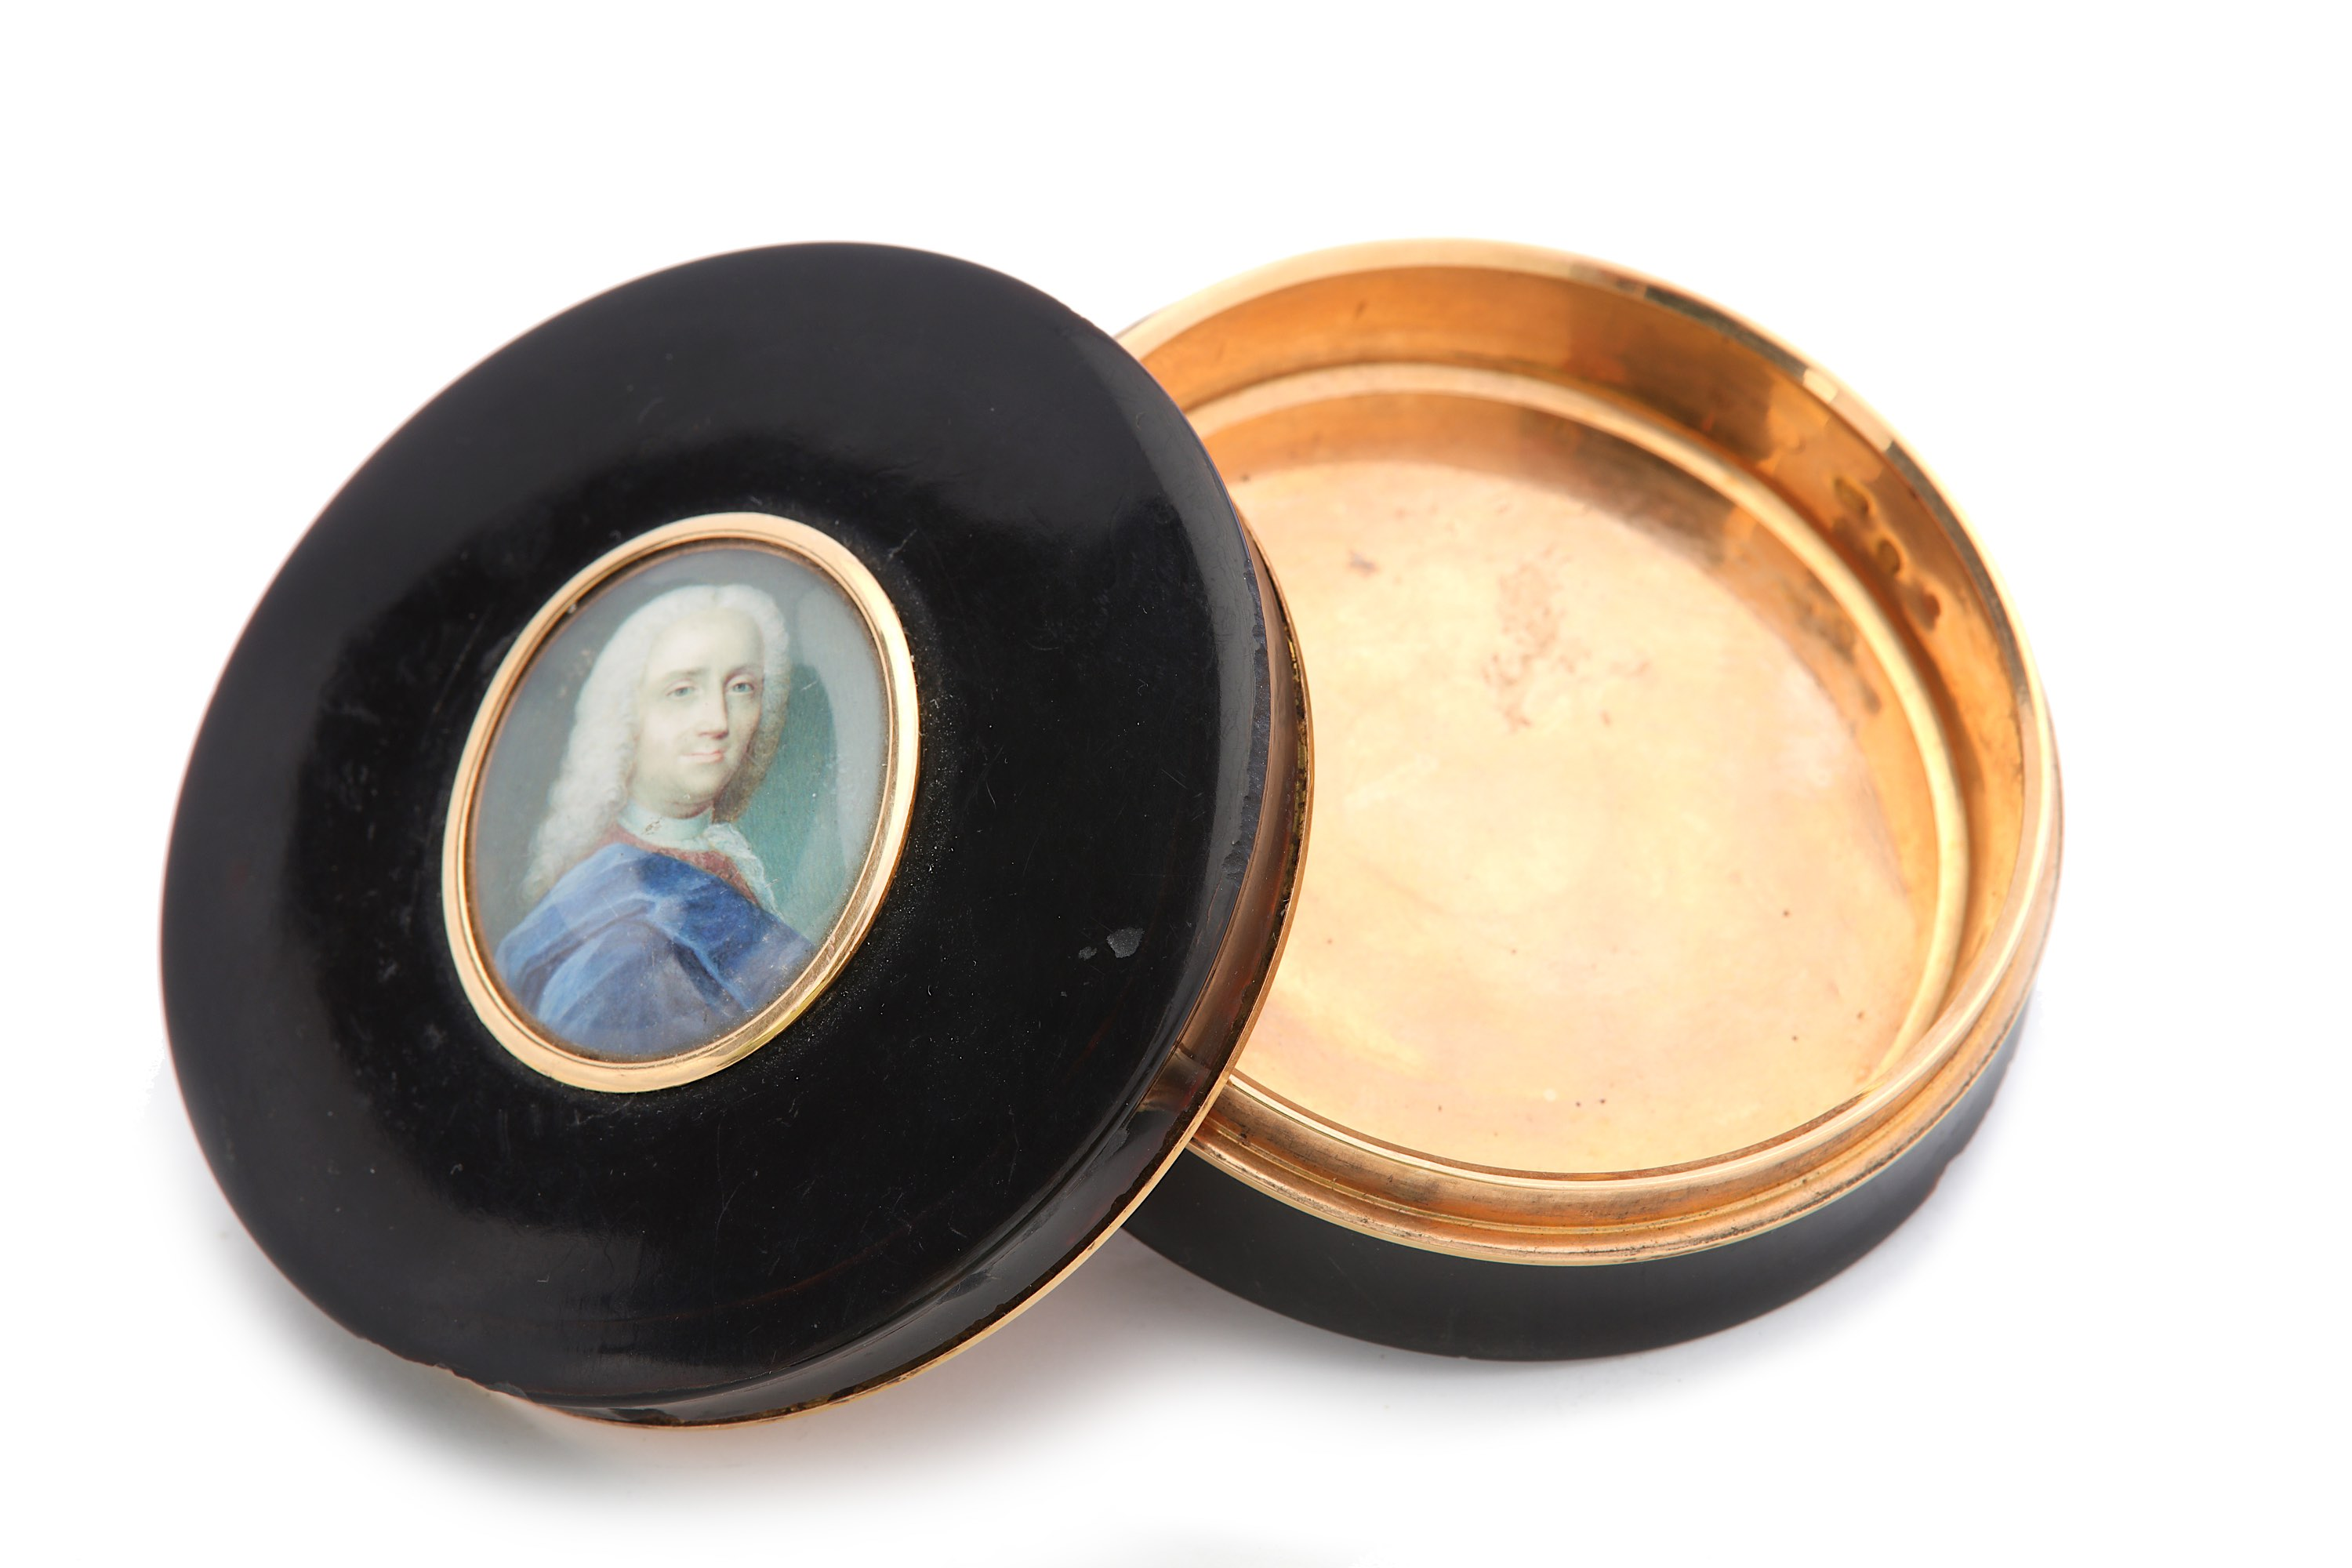 Lot 45 - An early 19th century tortoiseshell and gold portrait snuff box, Paris 1819-38 by J L